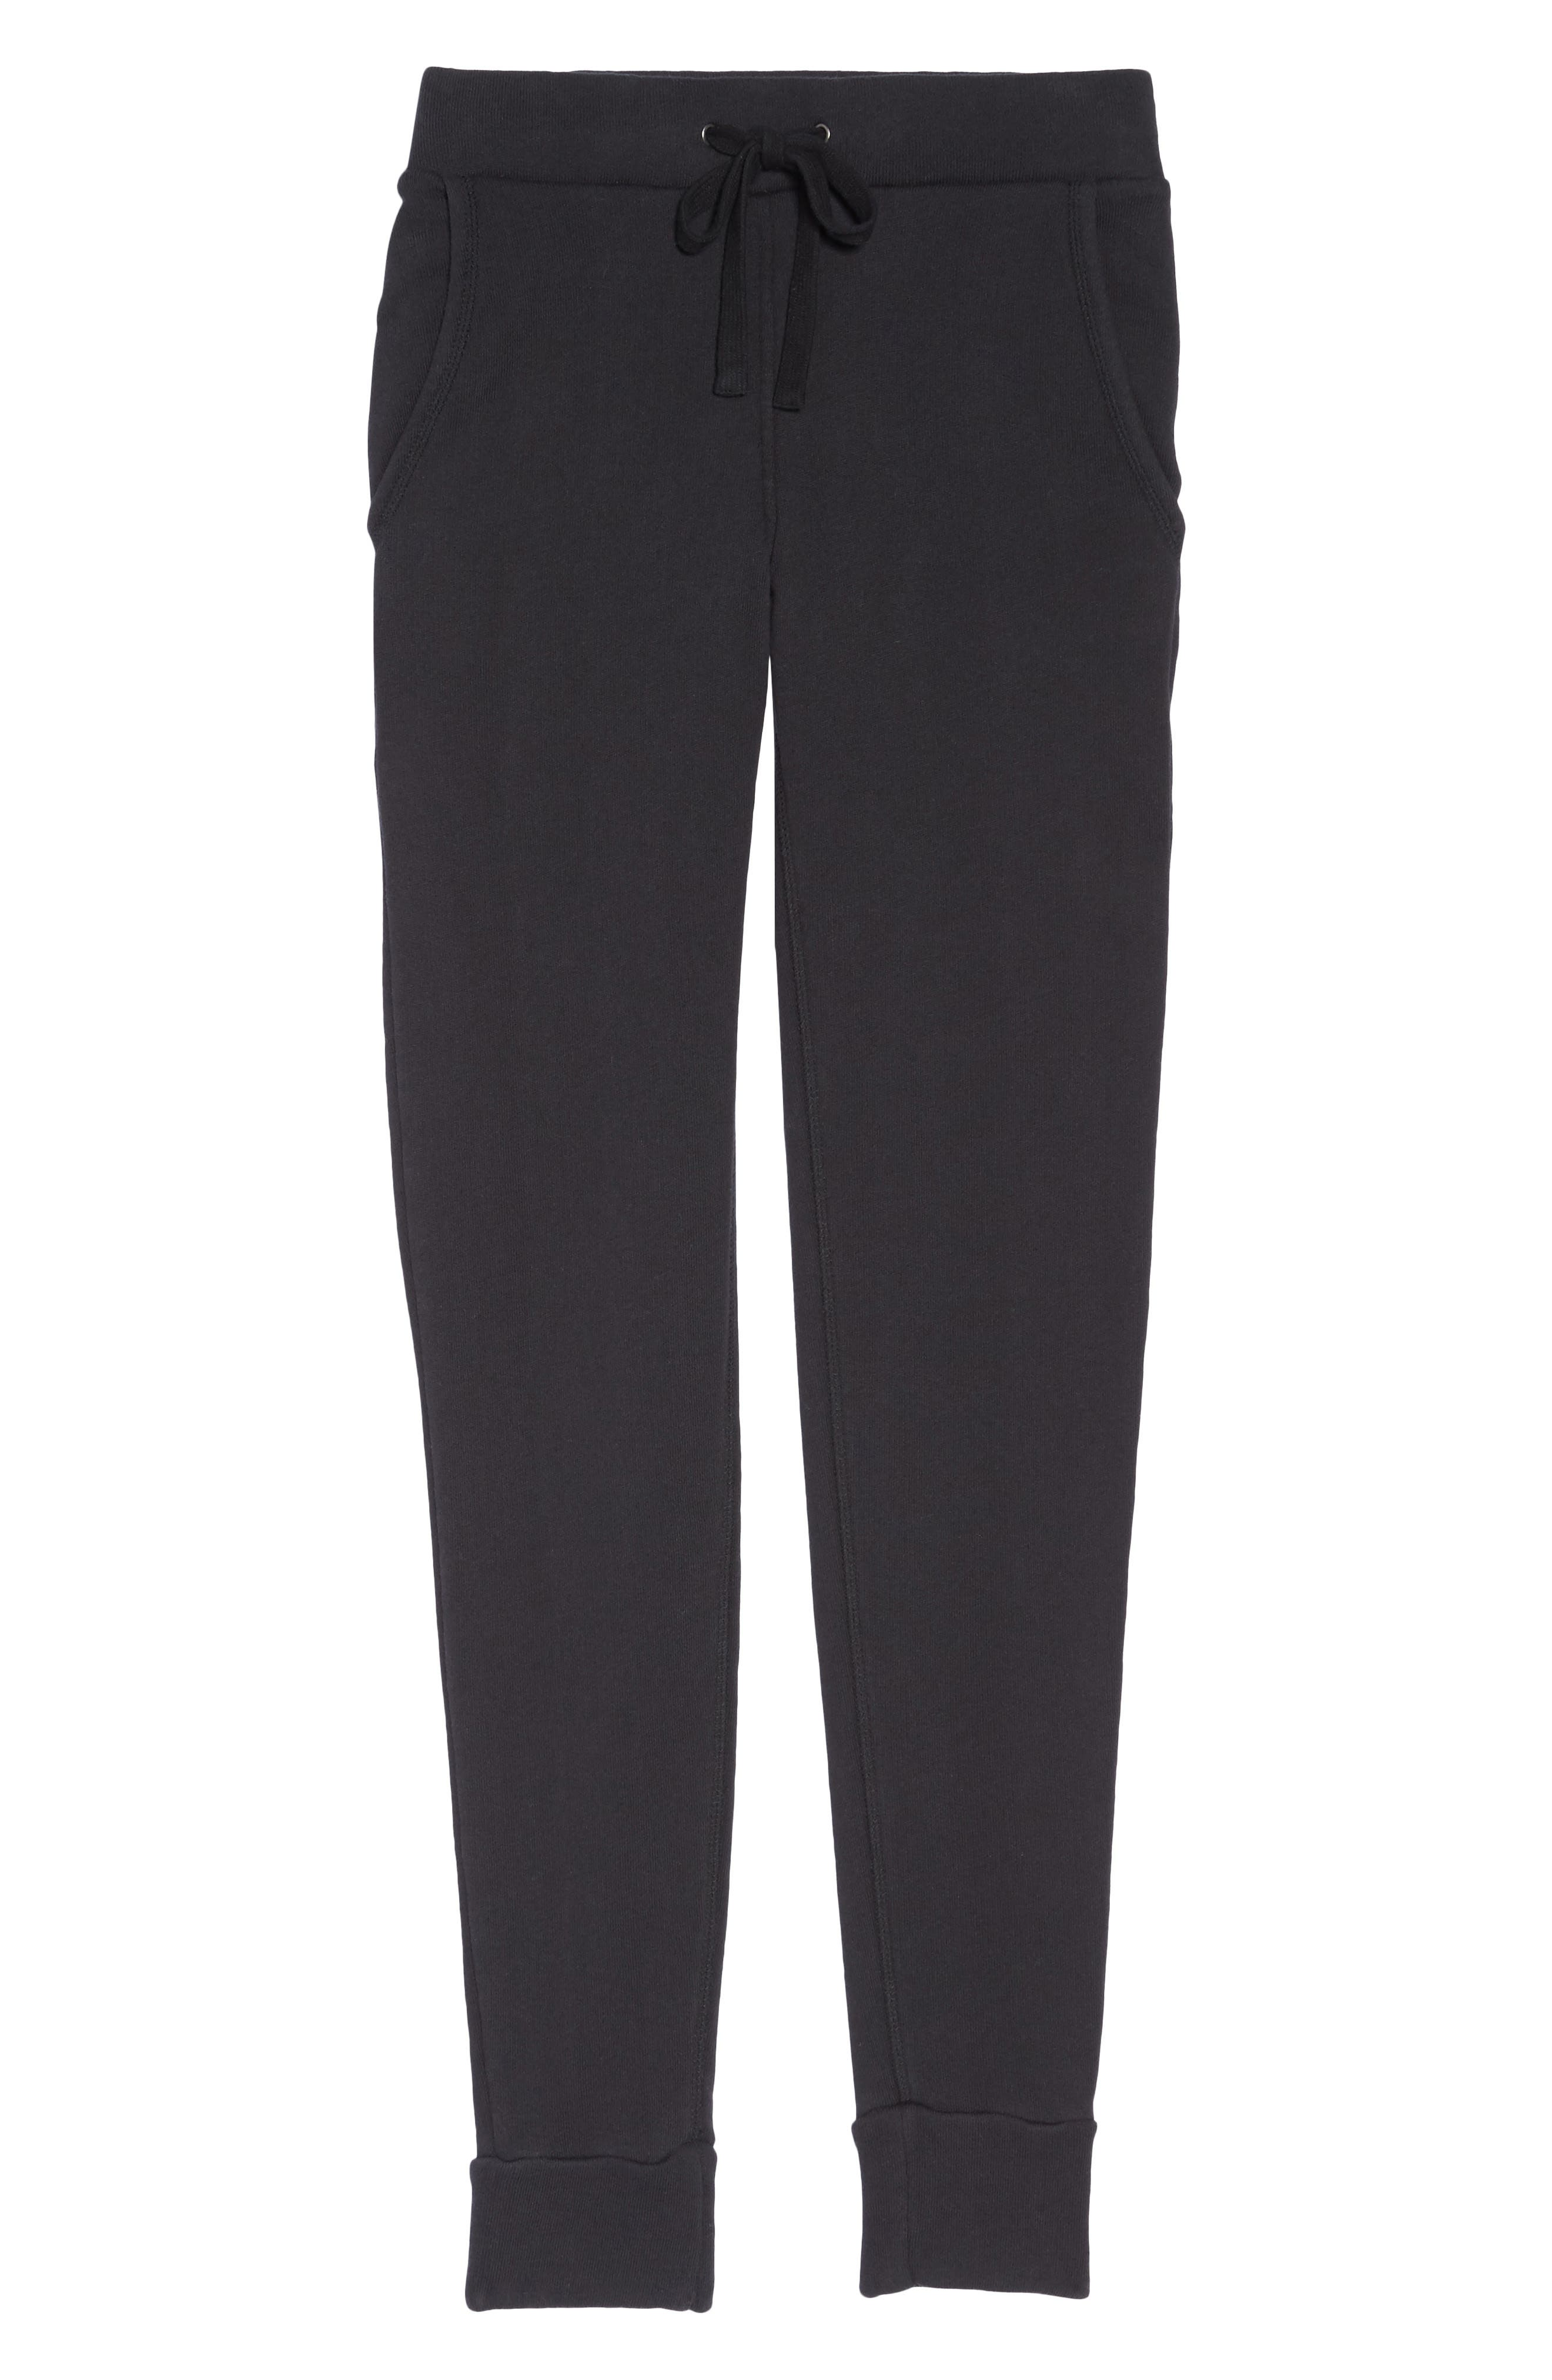 Main Image - UGG® Clementine Terrry Sweatpants